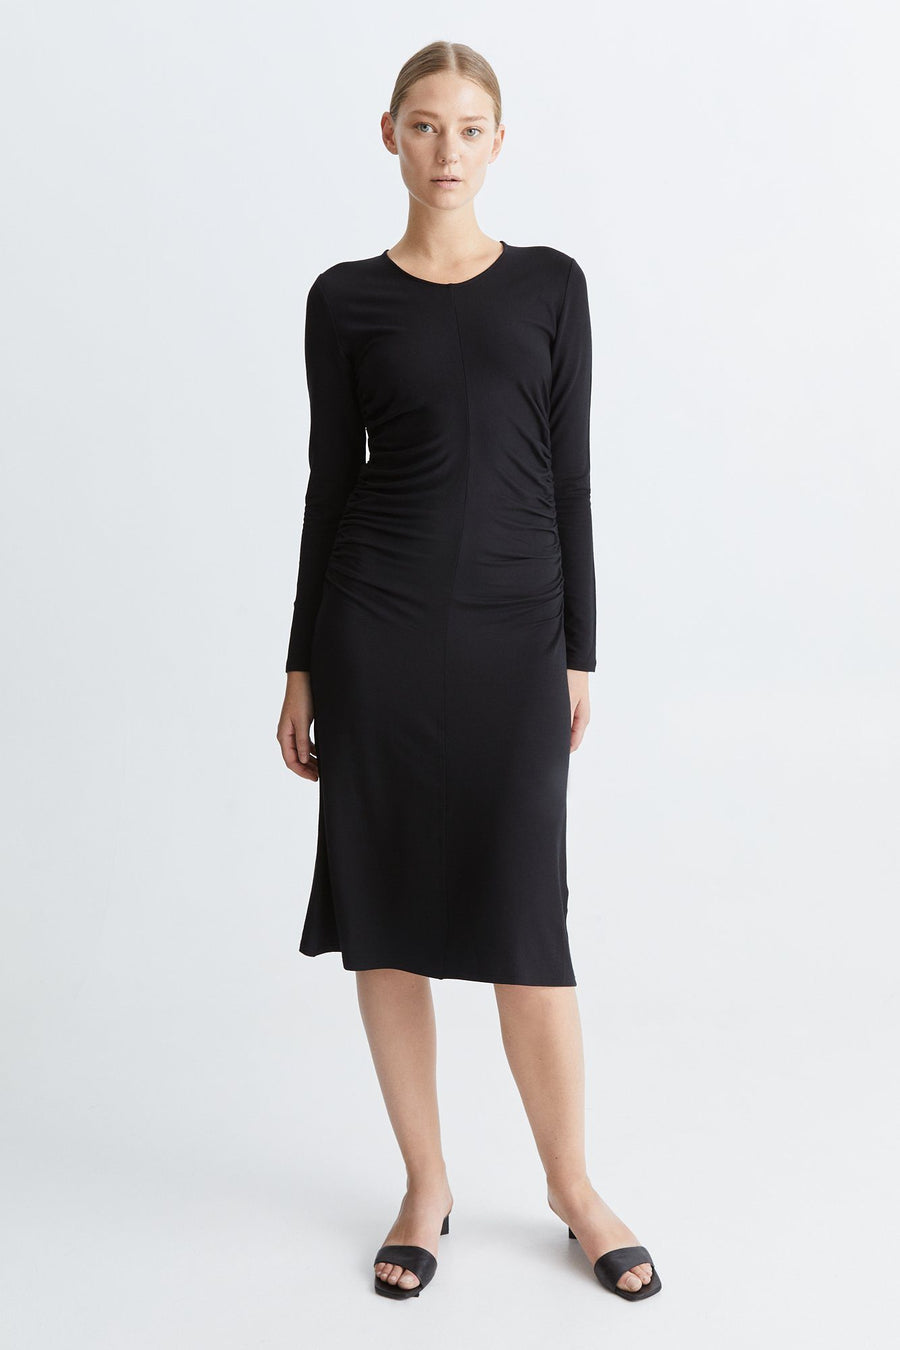 BROLO DRESS - BLACK